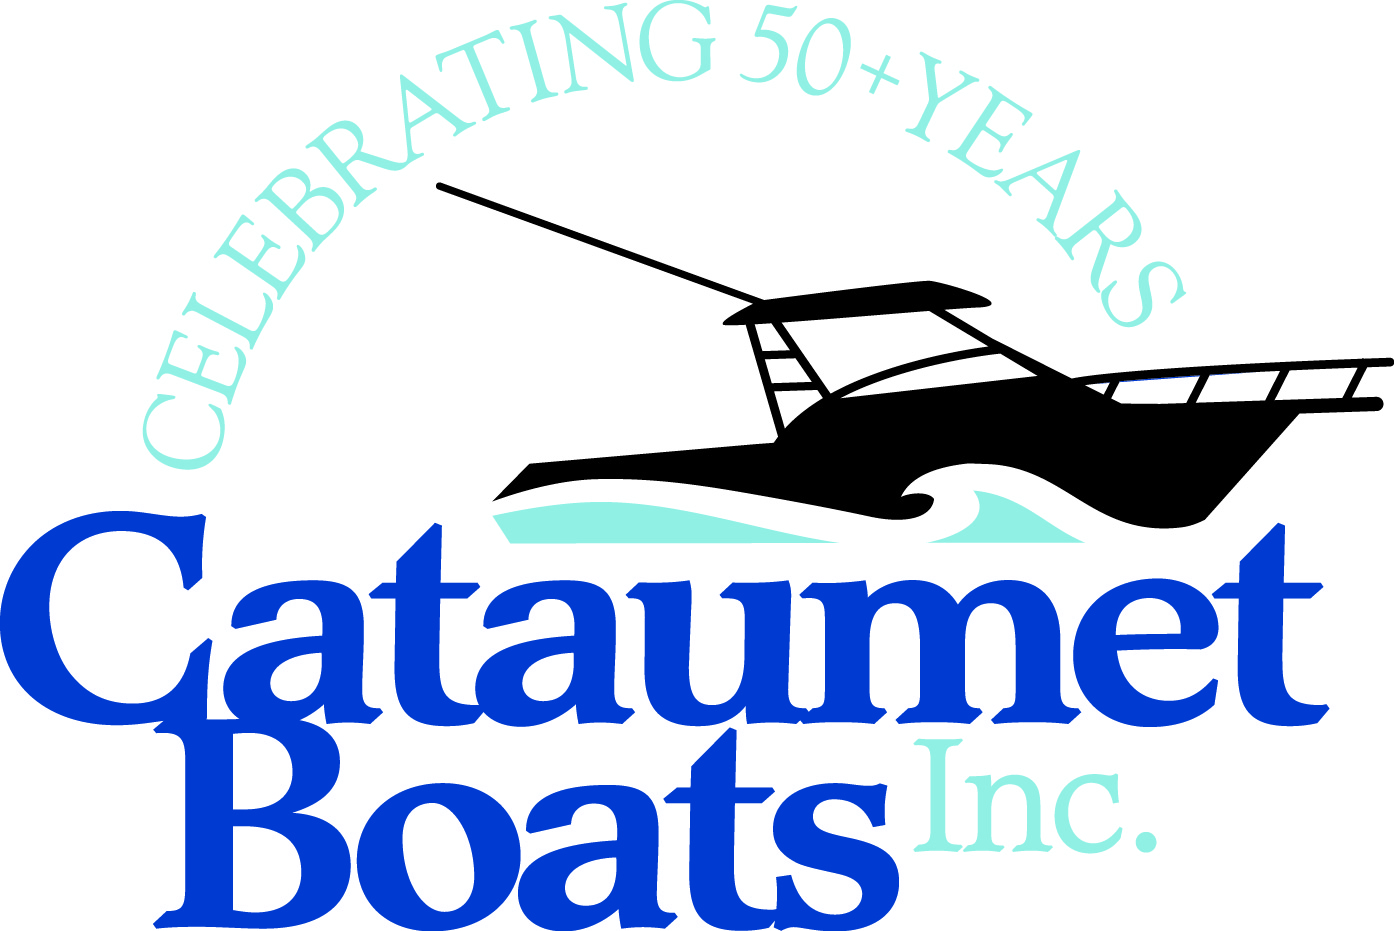 Cataumet Boats